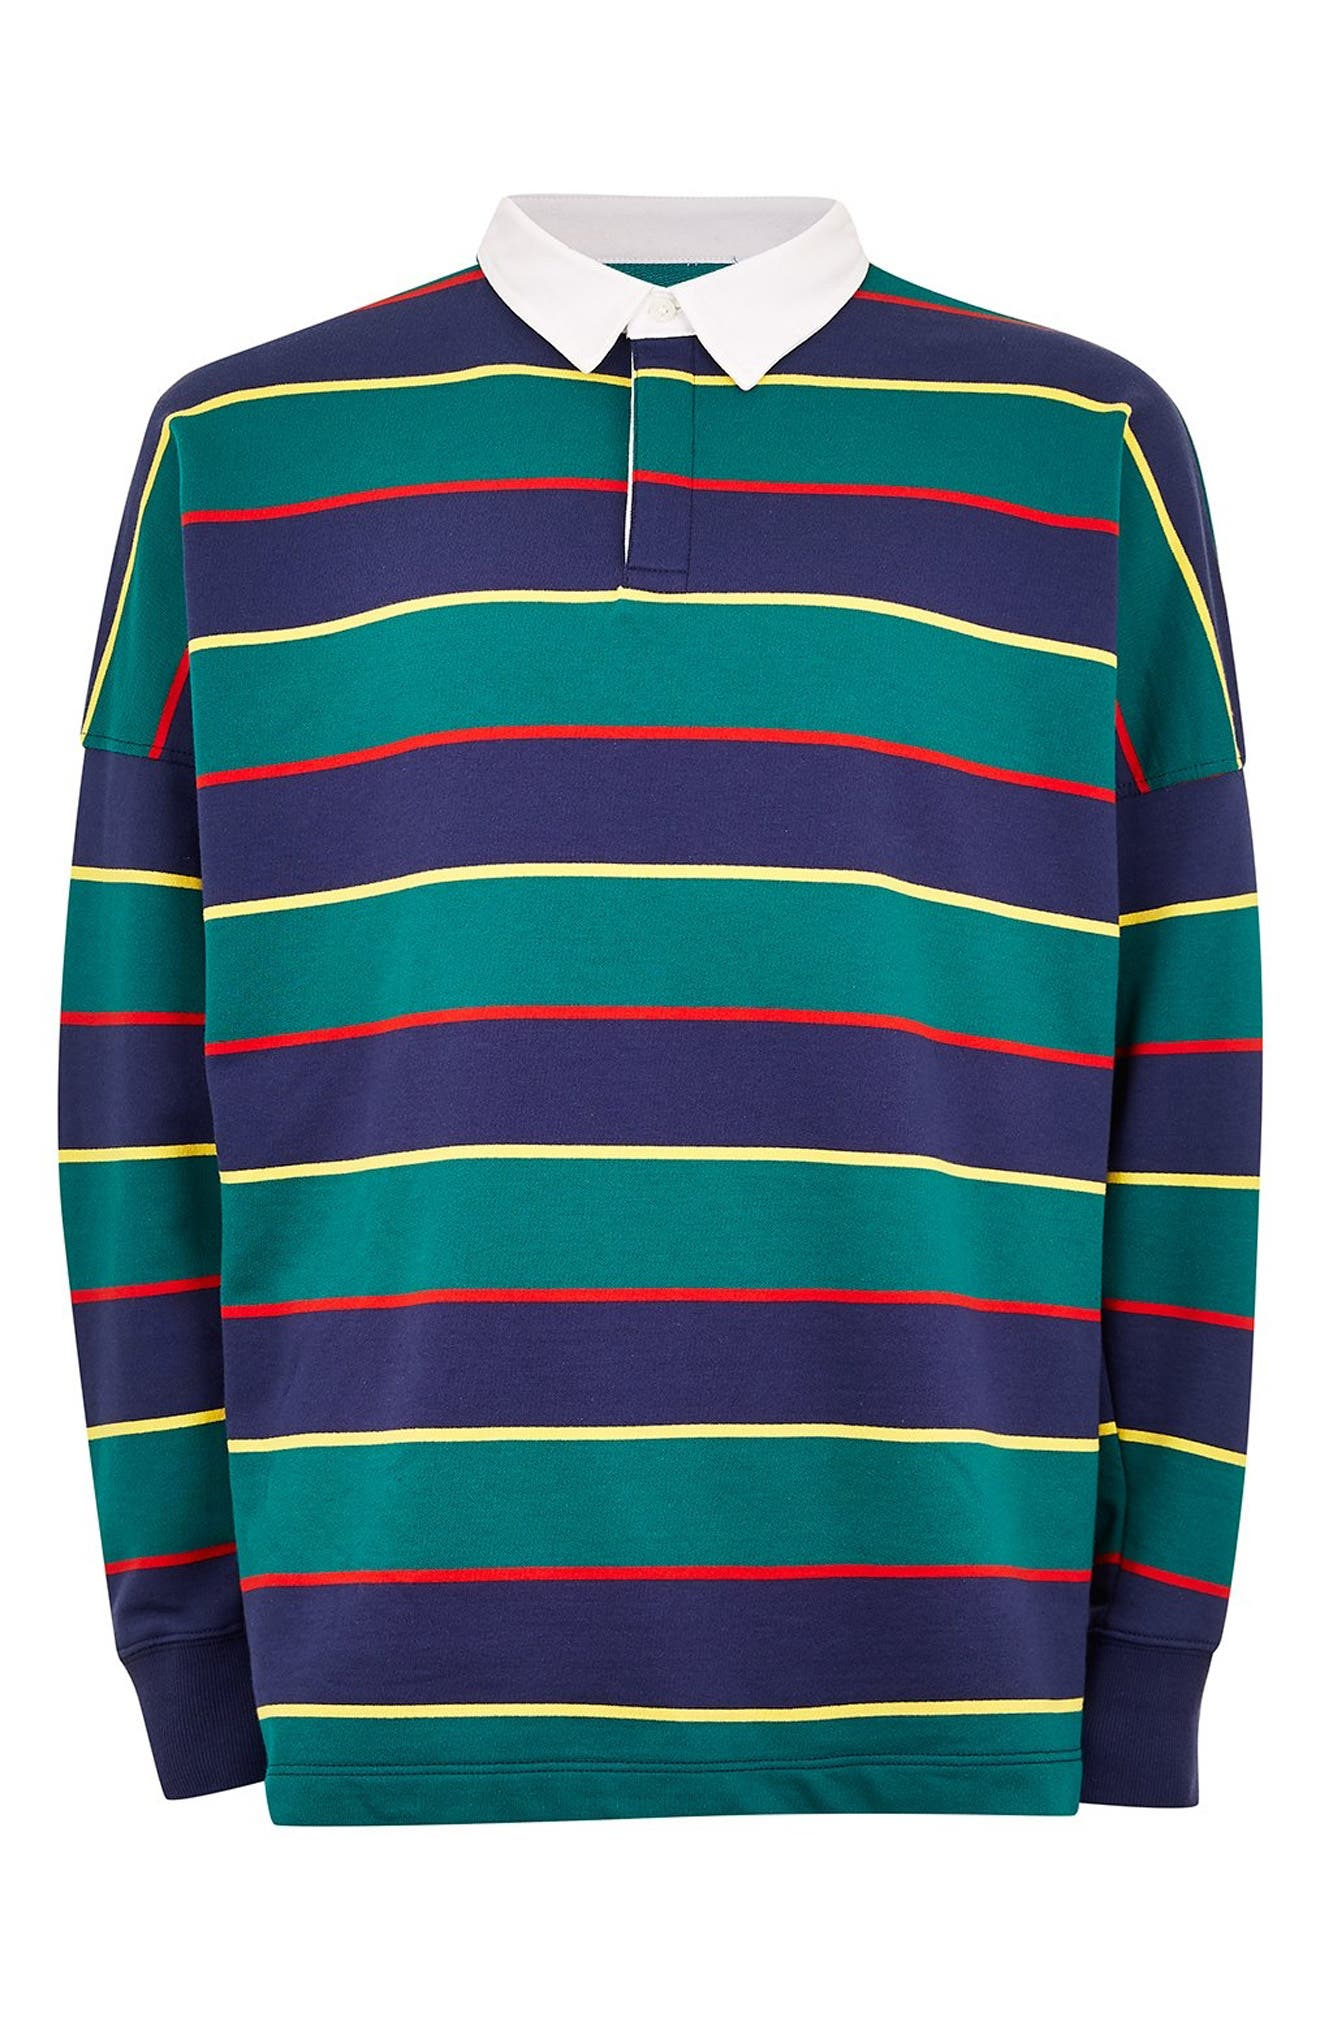 Rugby Stripe Shirt,                             Alternate thumbnail 4, color,                             GREEN MULTI